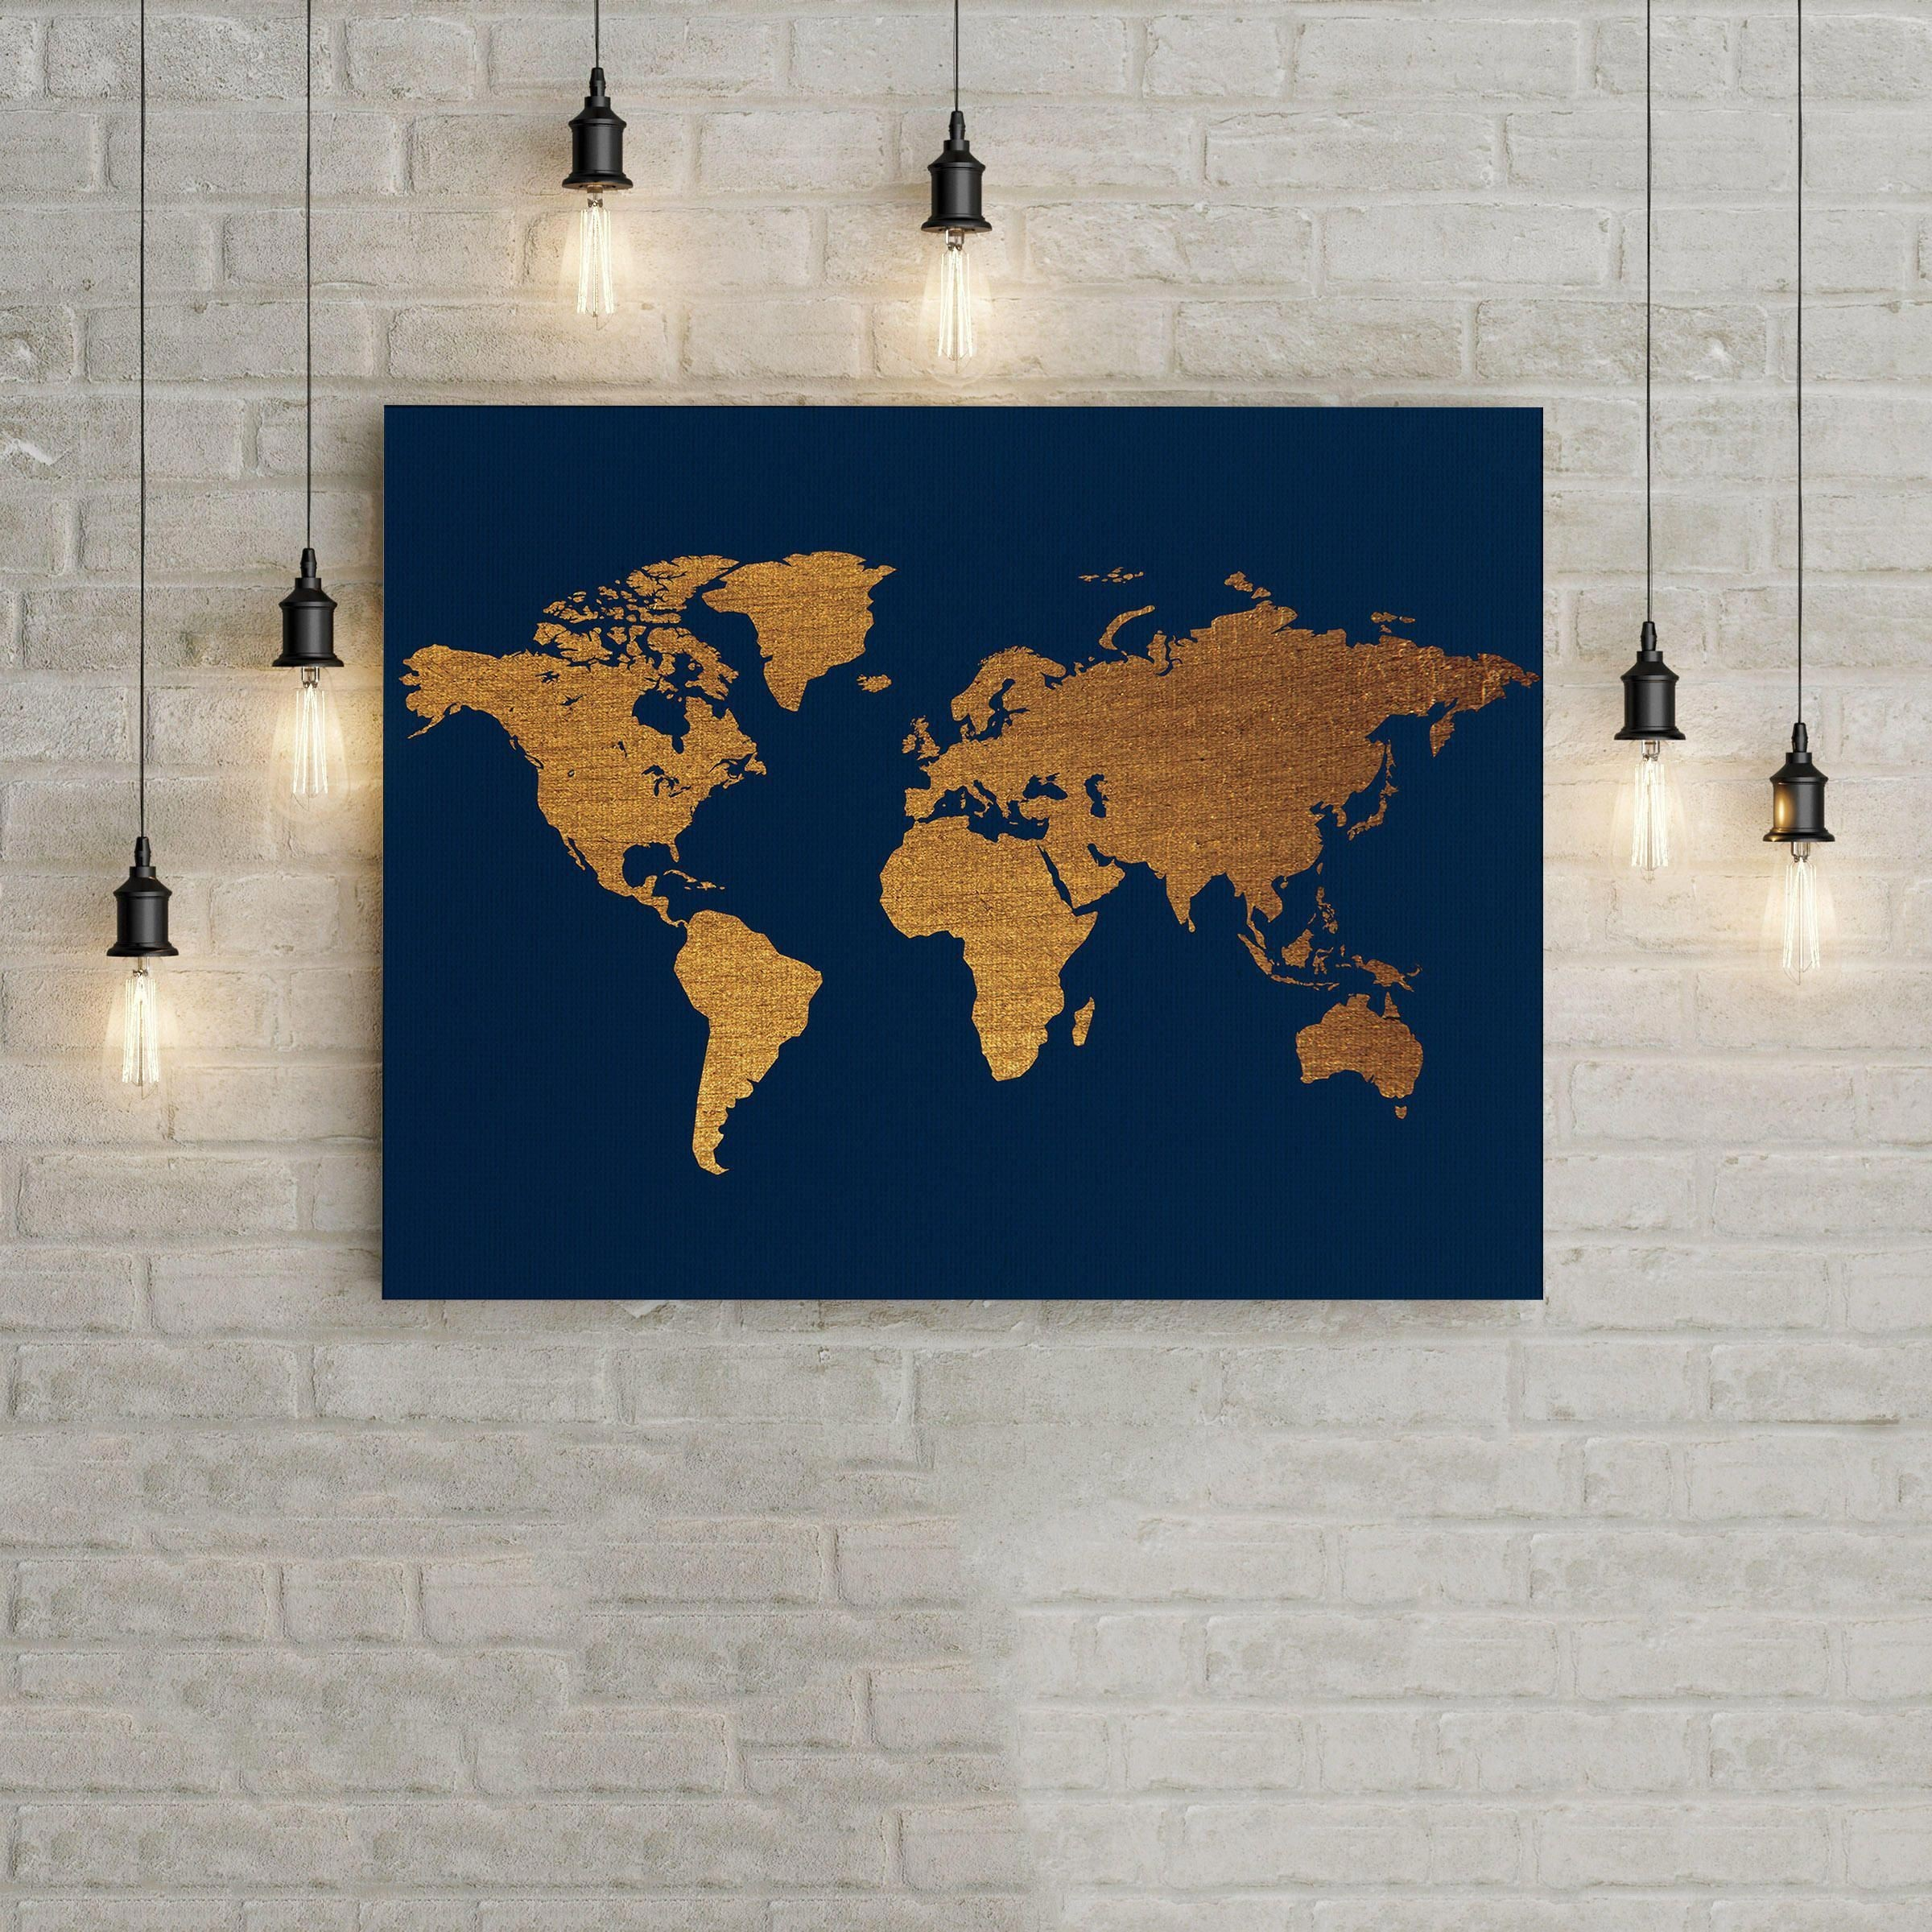 World Map Blue and Gold Home Decor Wall Art Poster fice Decor fice Wall Art